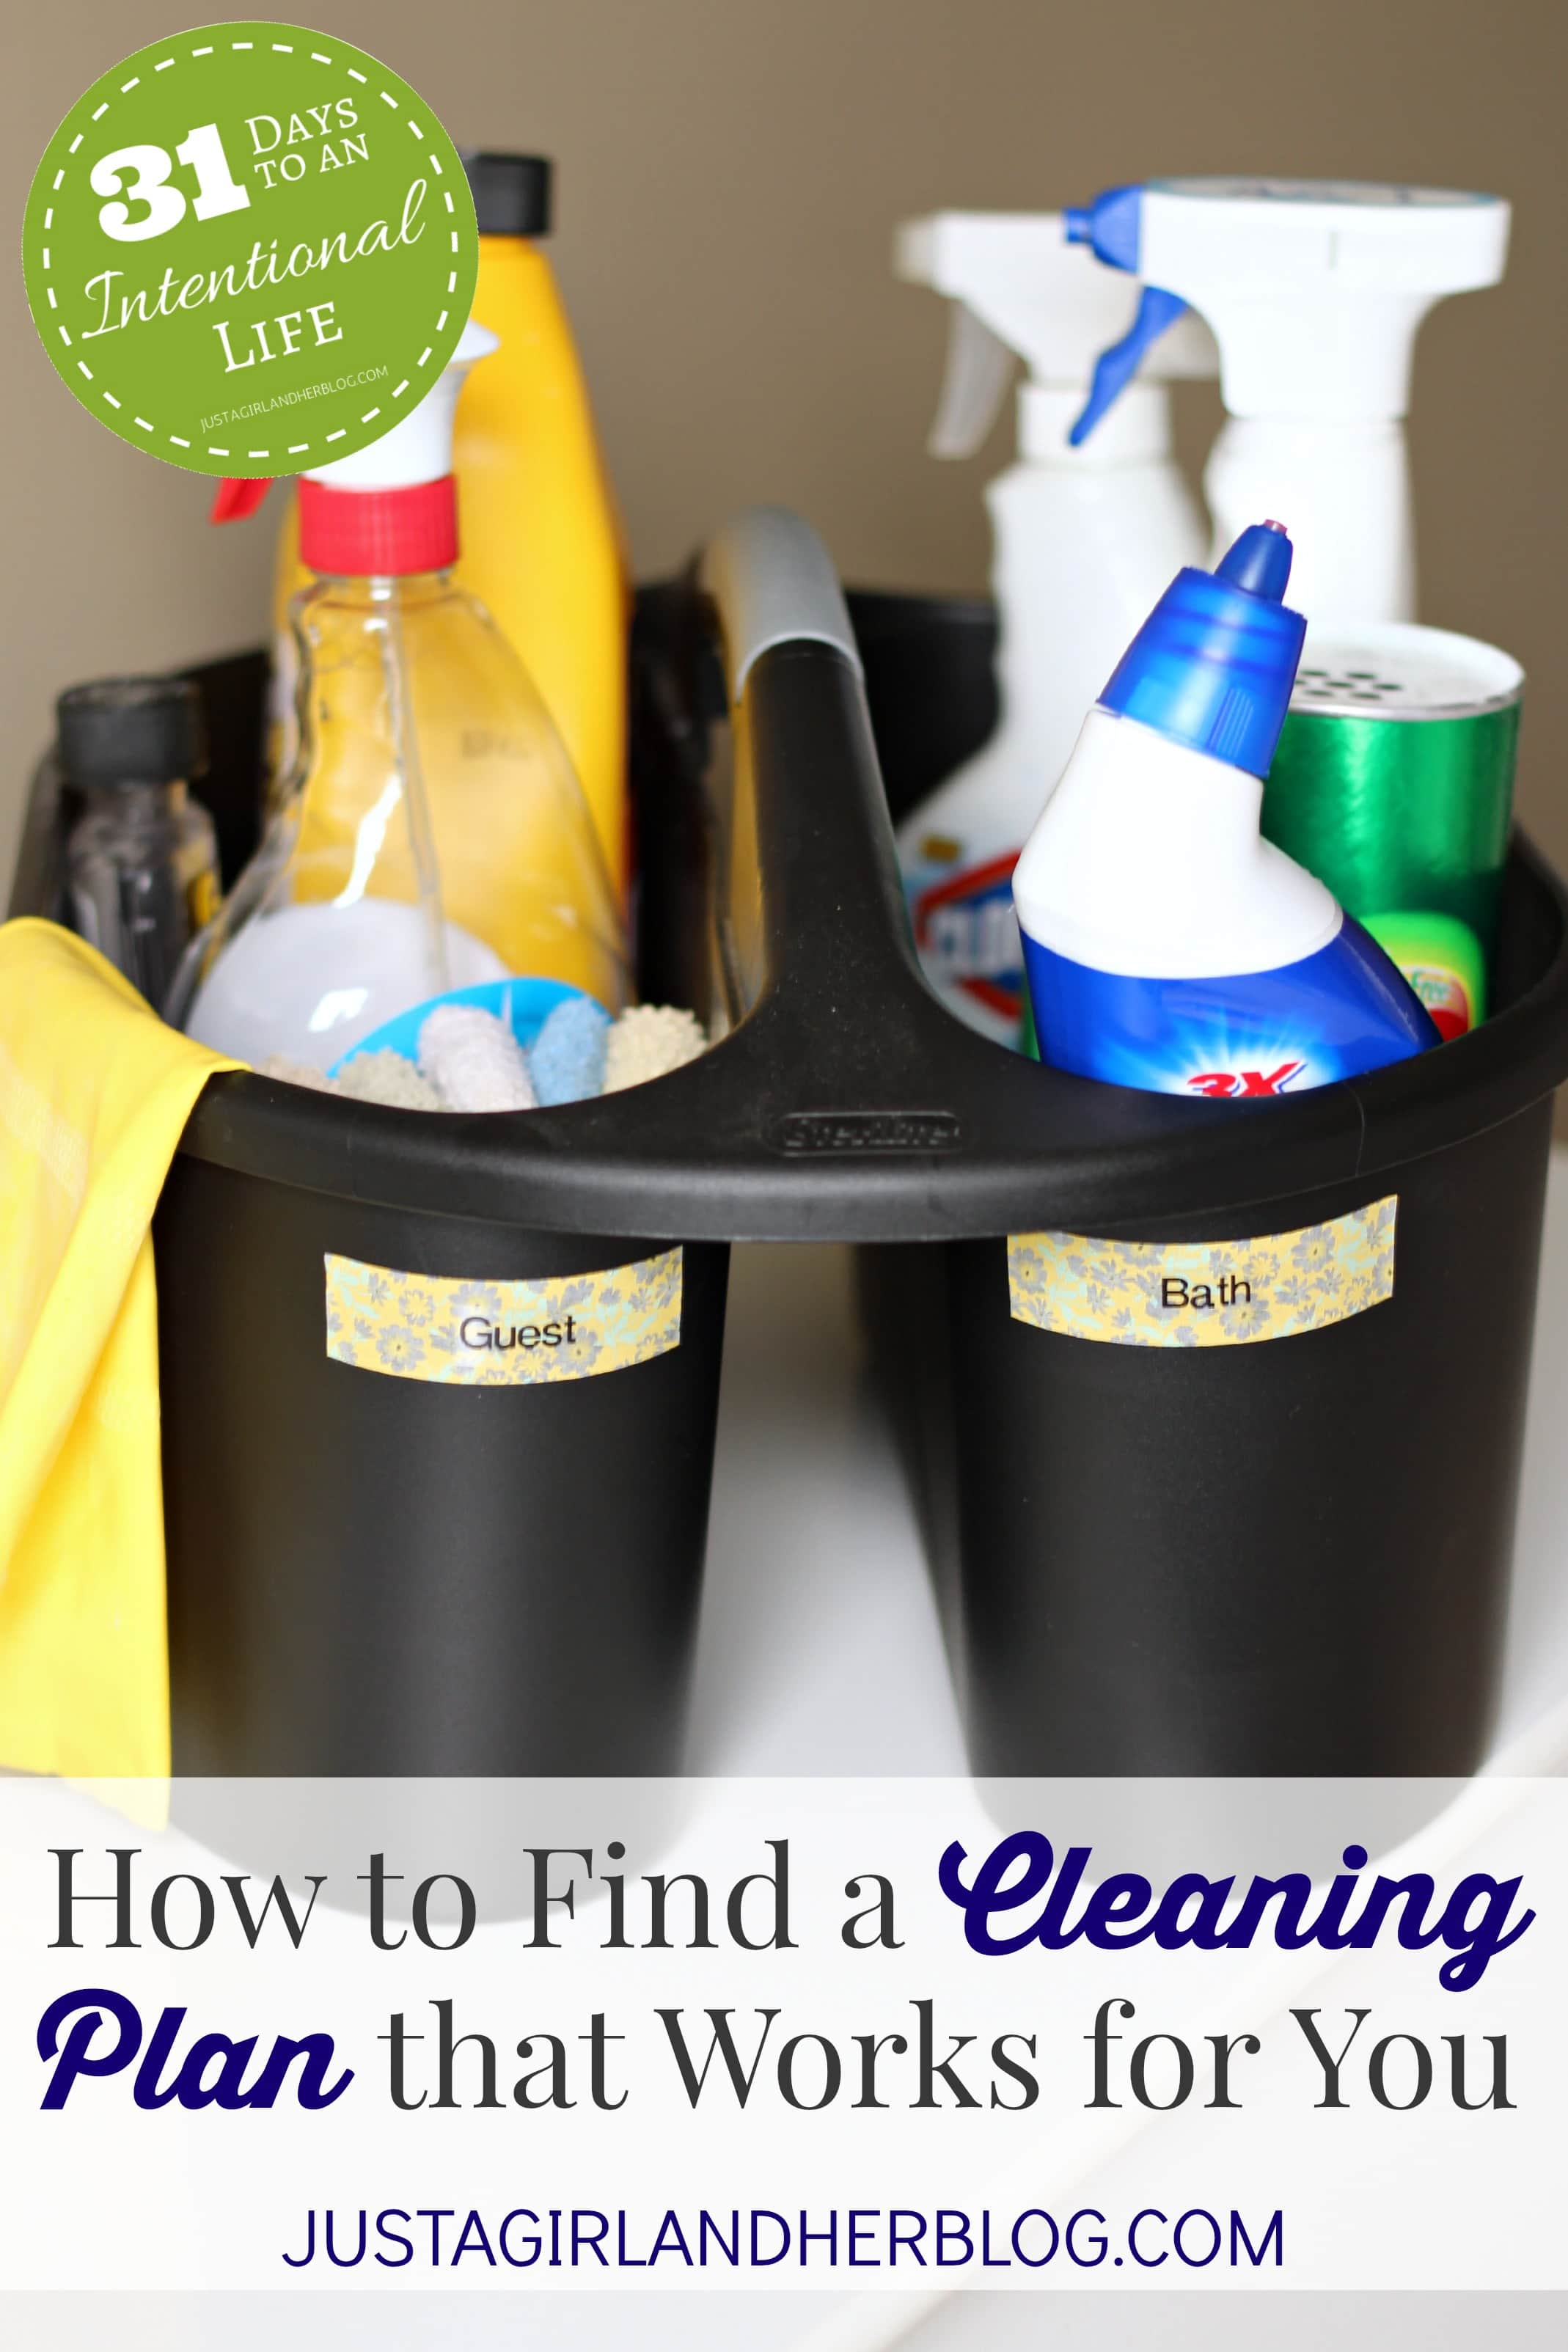 Best way to clean hard wood floors - My Cleaning Plan The Struggle Is Real